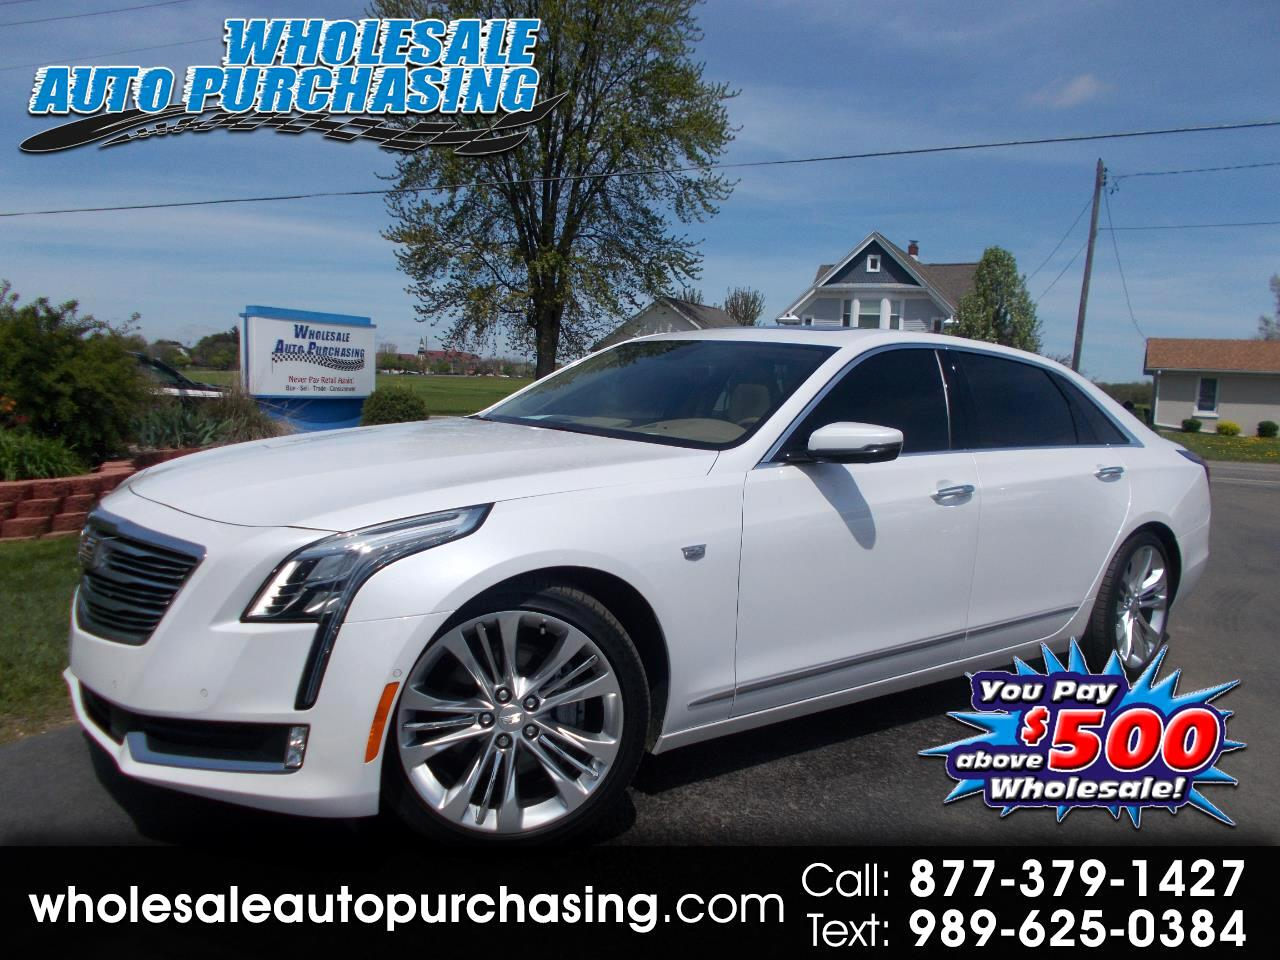 2017 Cadillac CT6 4dr Sdn 3.0L Turbo Platinum AWD